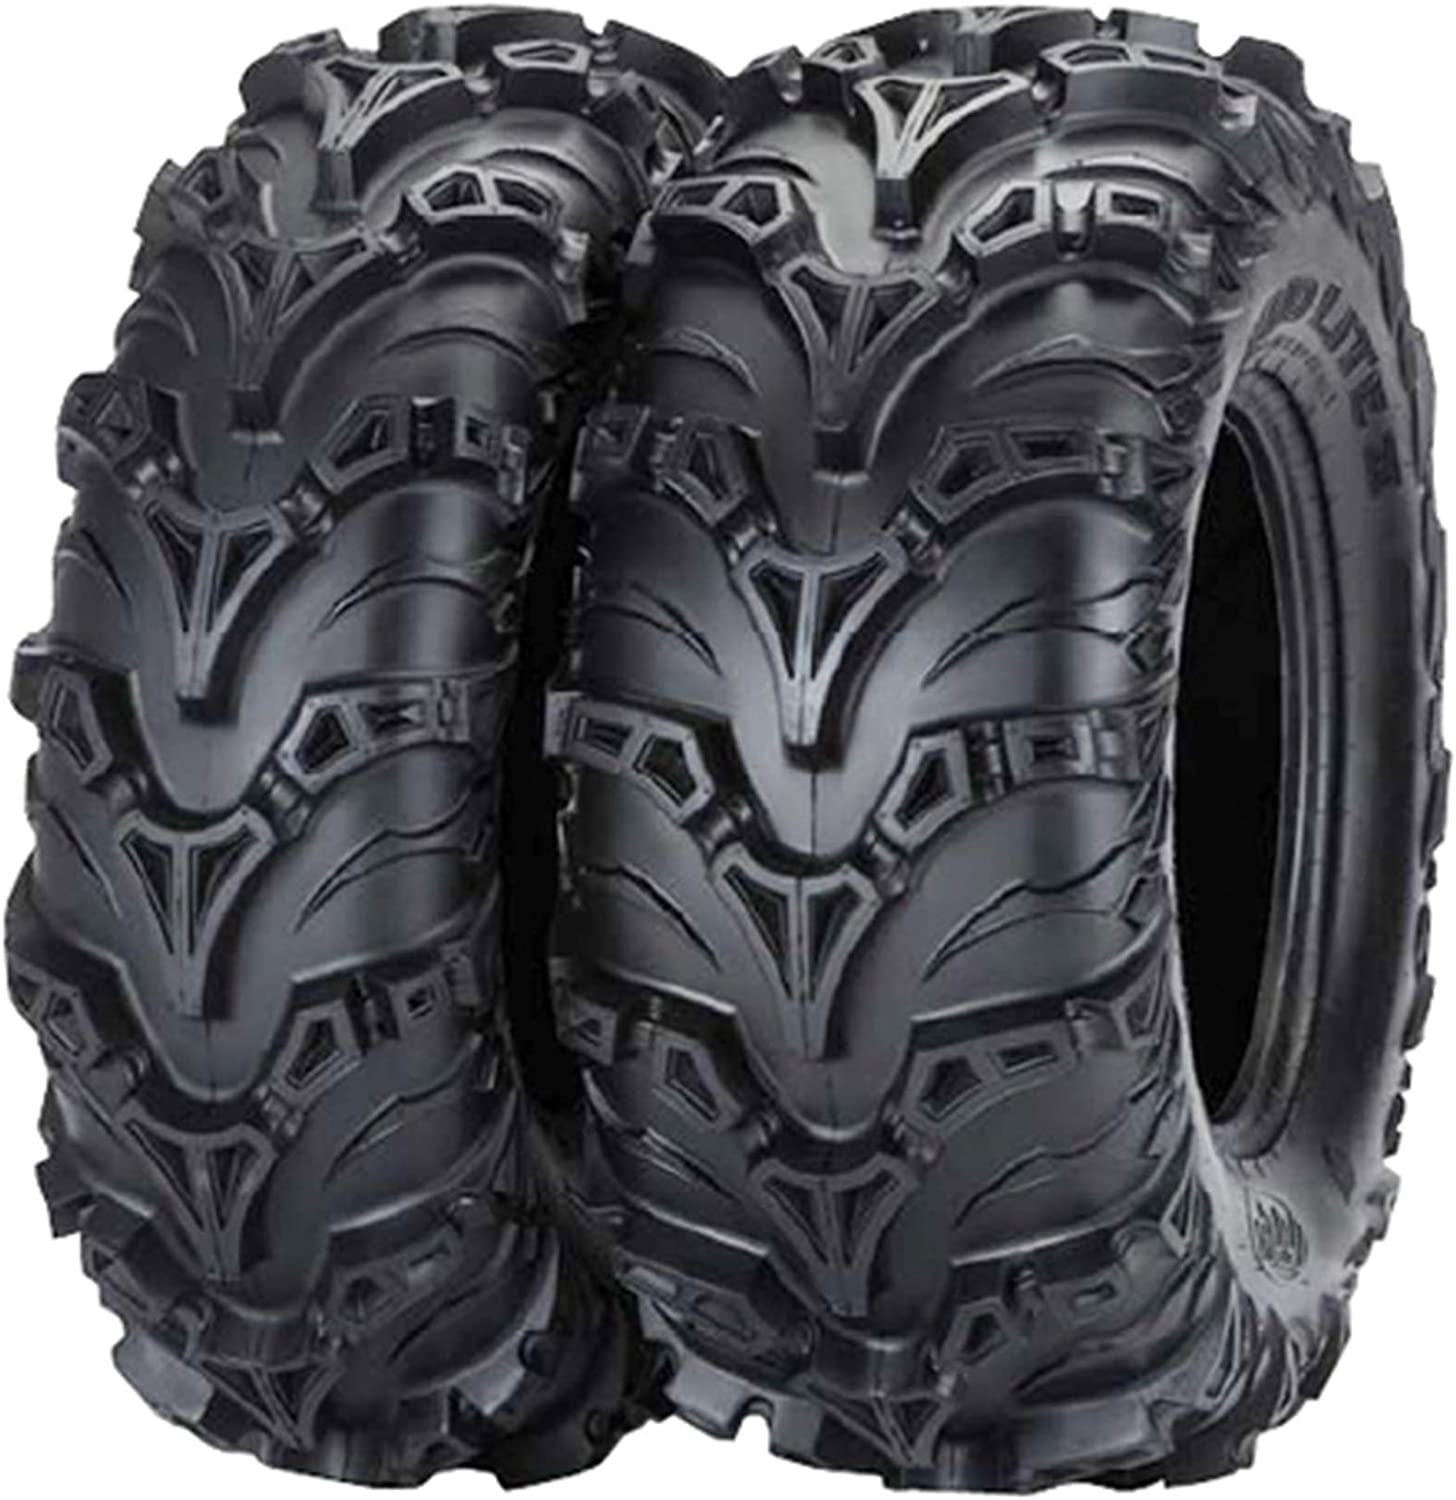 Mud Lite II Rear Tire - Colorado Springs Don't miss the campaign Mall 25x10-12 RZR Polaris 80 2013 Fits Ranger